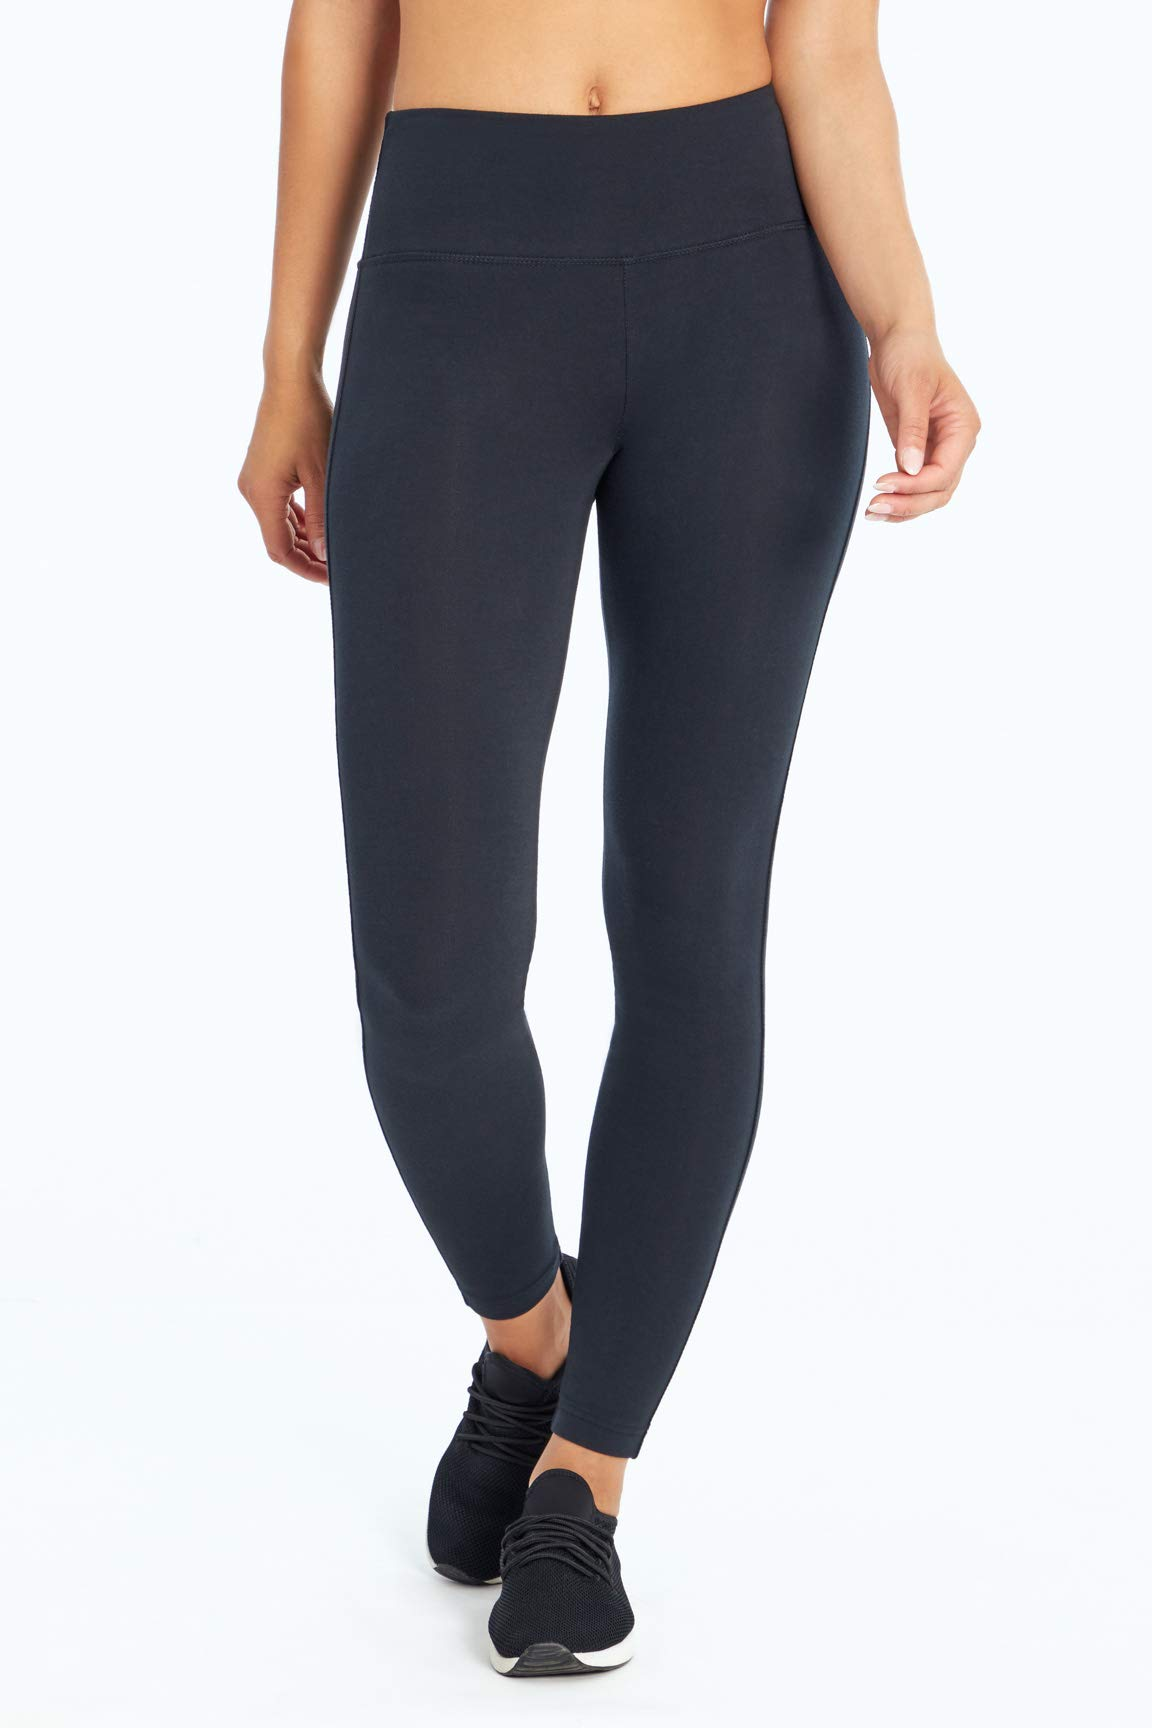 Marika Women's Standard Camille Butt Booster Leggings, Black, Small